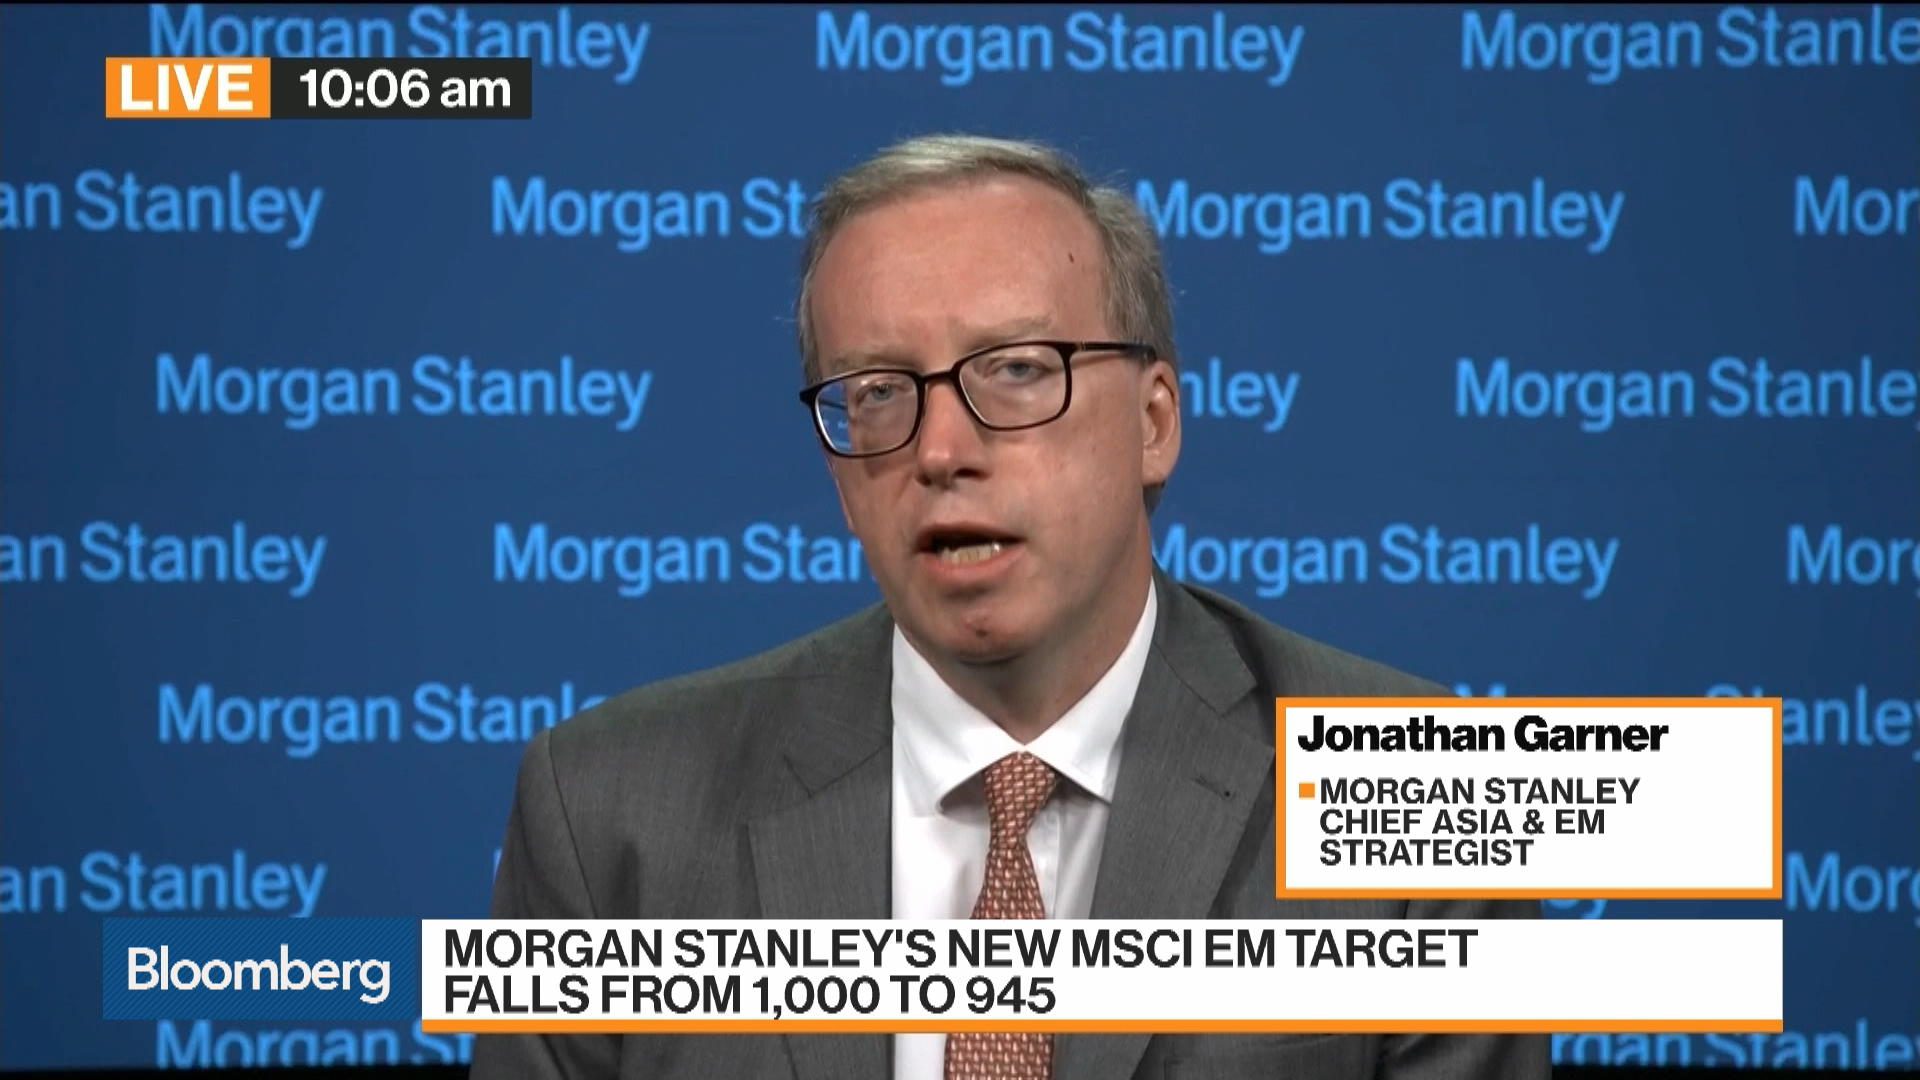 Morgan Stanley S Garner On Asian Market Outlook Bloomberg